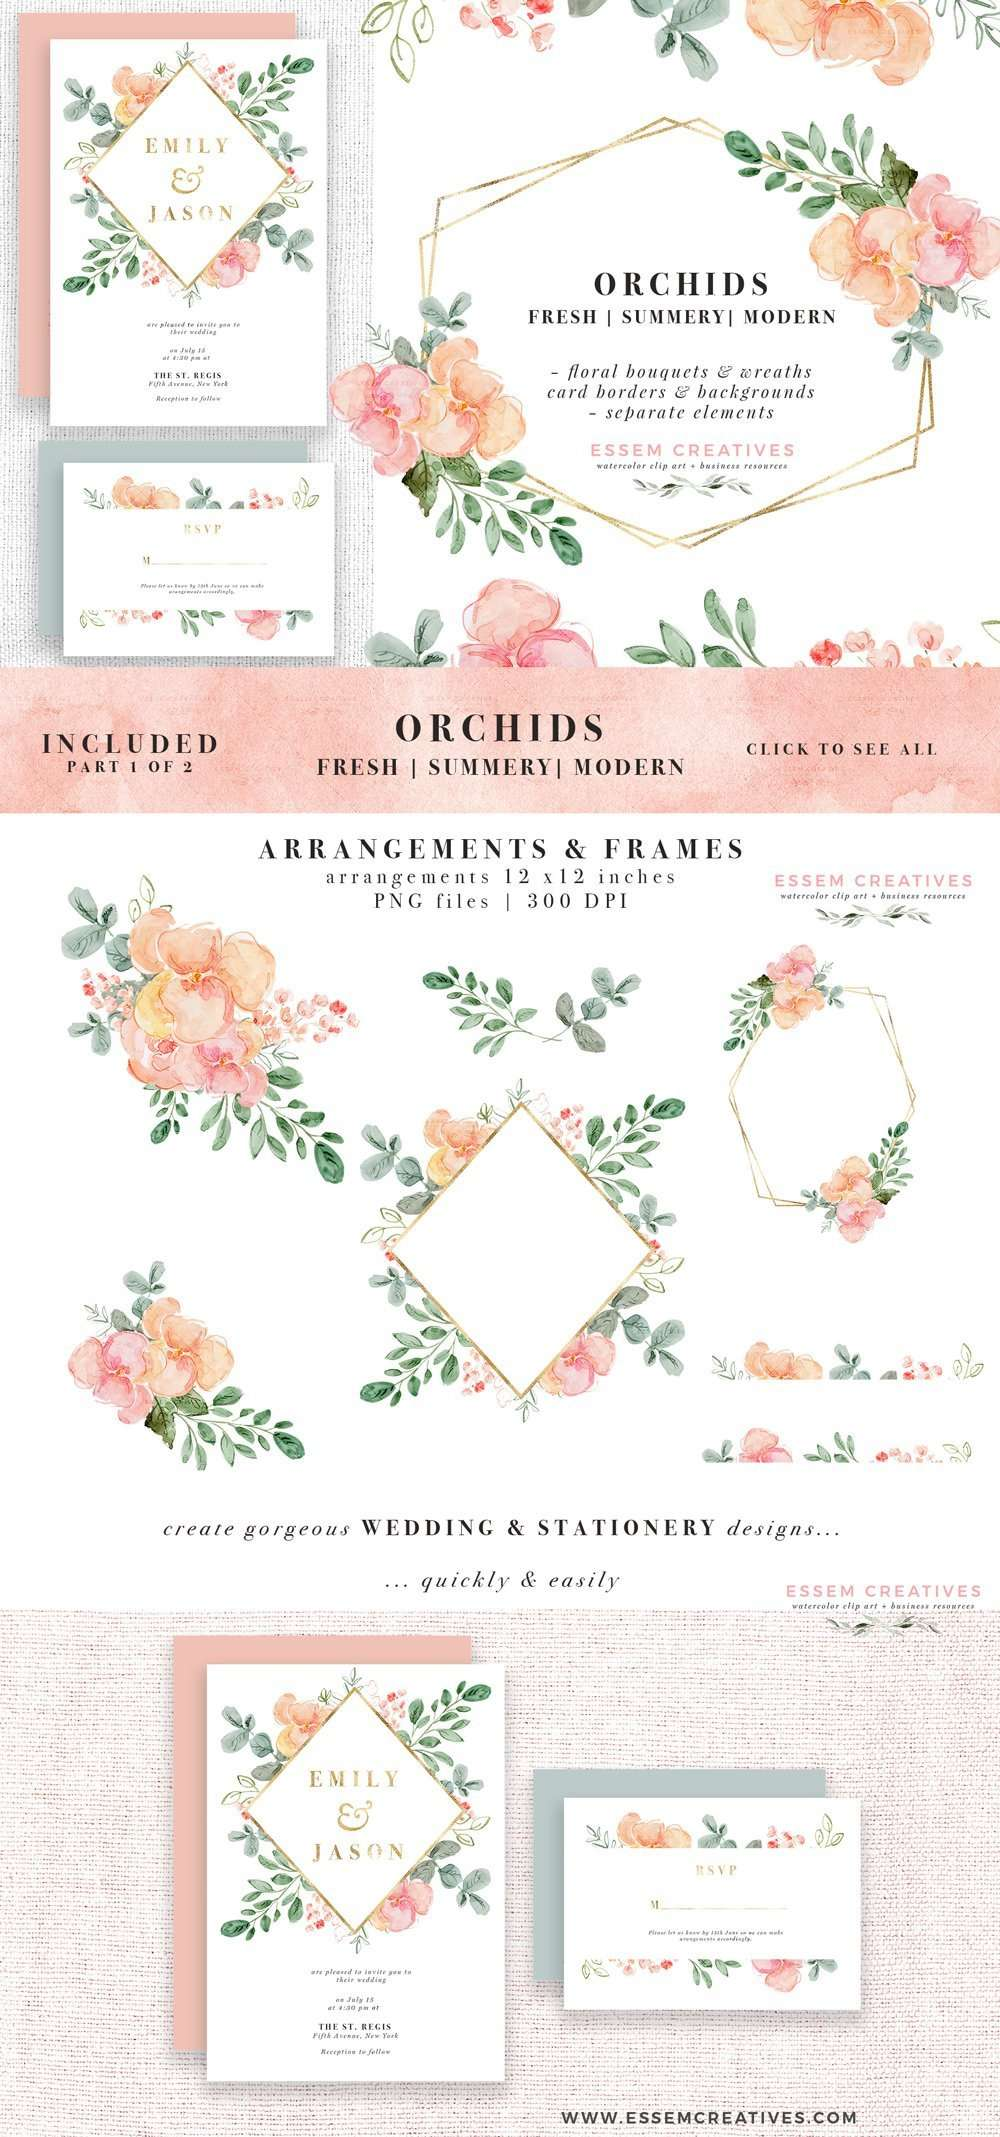 Watercolor Orchids Floral Graphics Clipart digital download | Tropical watercolour wedding invitation, peach pink watercolour save the date, DIY summer beach wedding, tropics birthday invite, bridesmaid proposal, bridal shower decoration on a budget, table numbers welcome signs, logo branding, line drawing, botanical illustration gold geometric floral frame background, digital paper, planner stickers, bouquets & wreaths, commercial use available. Click to see more>> #tropicalwedding #watercolor